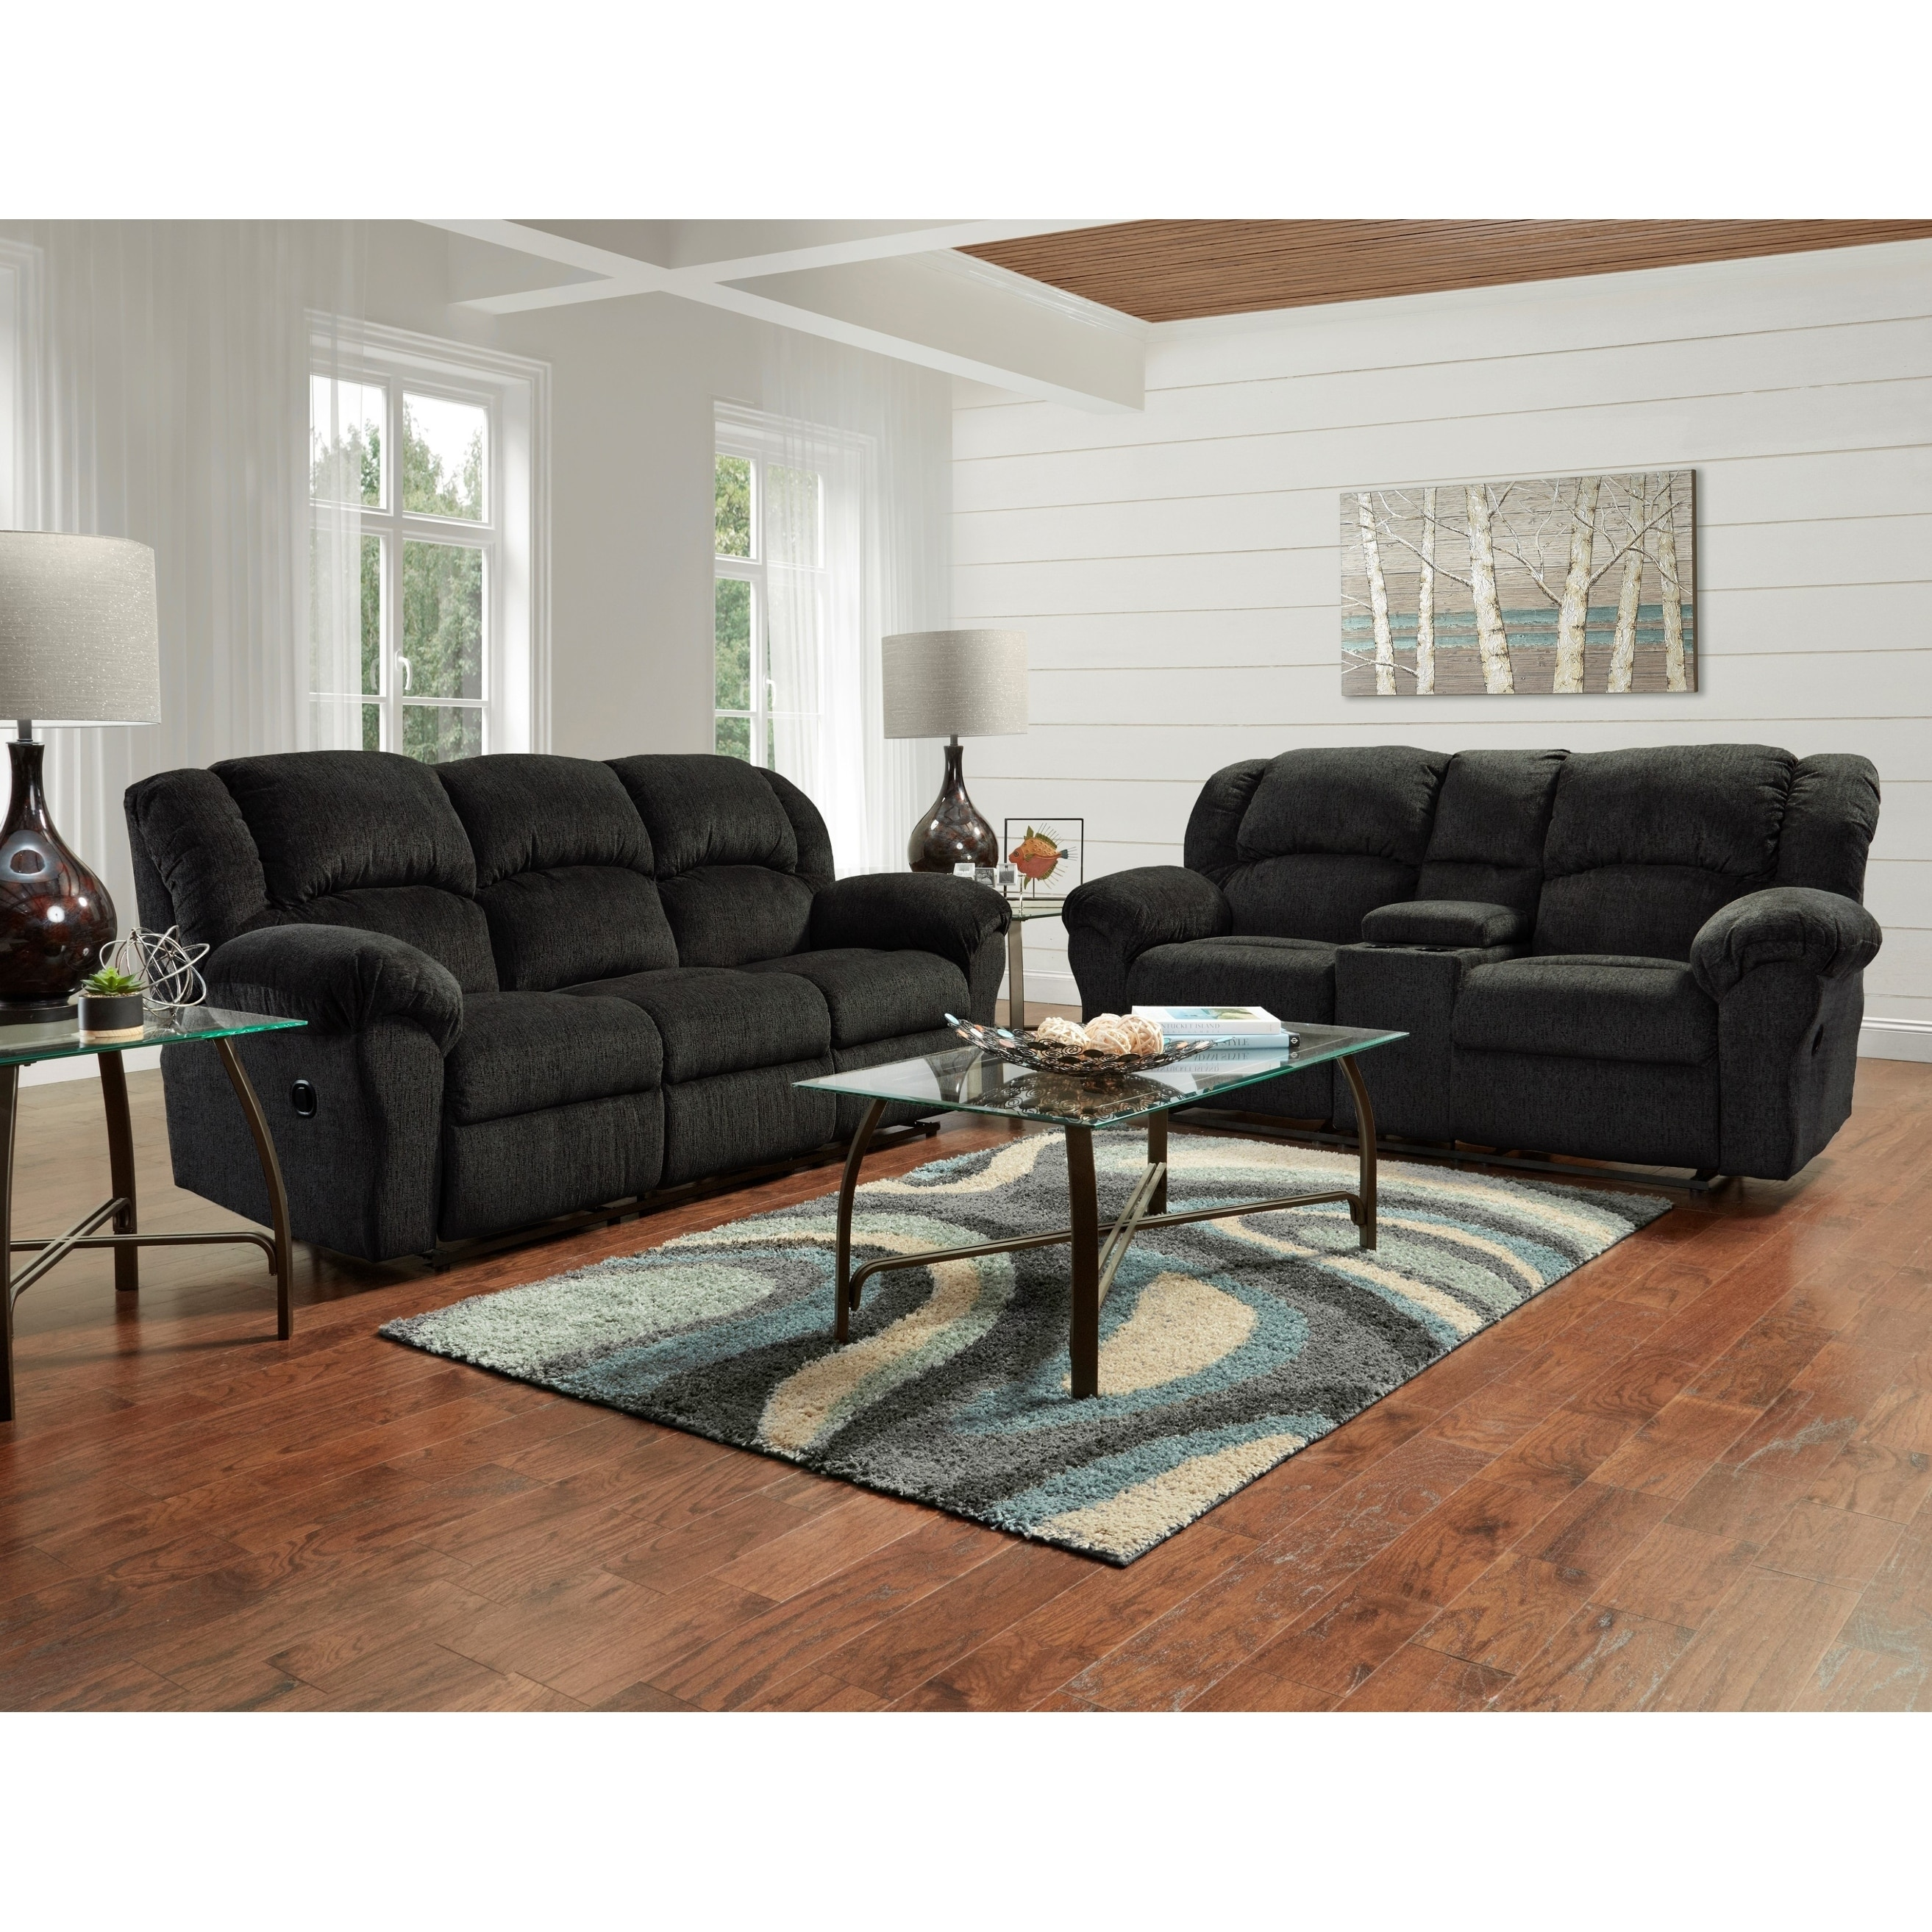 Microfiber Sofa And Loveseat Set